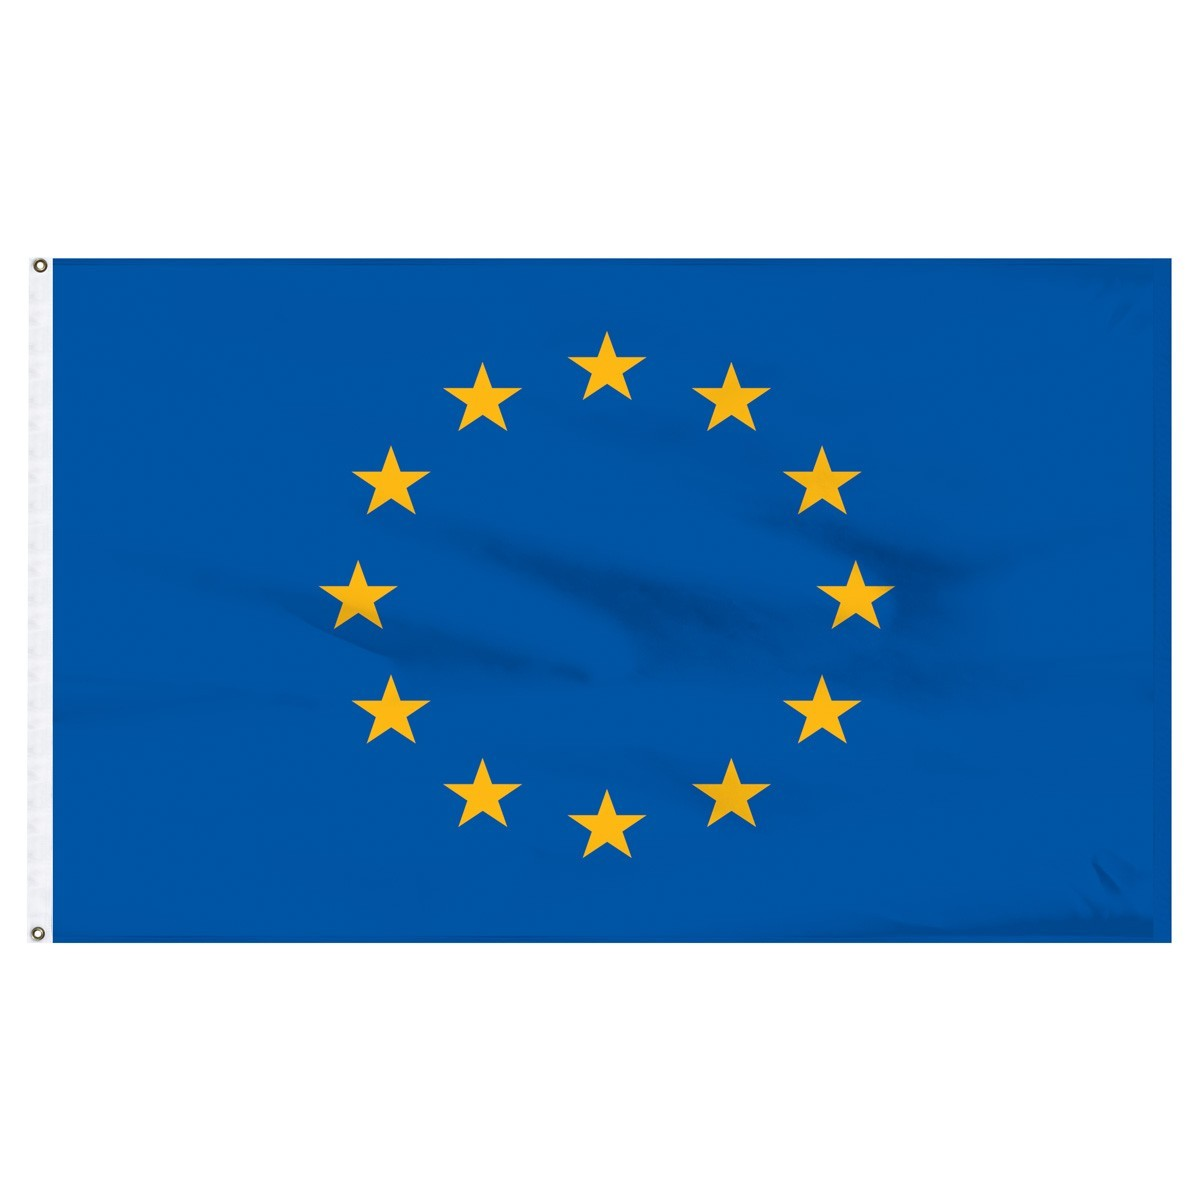 European Union 3' x 5' Outdoor Nylon Flag